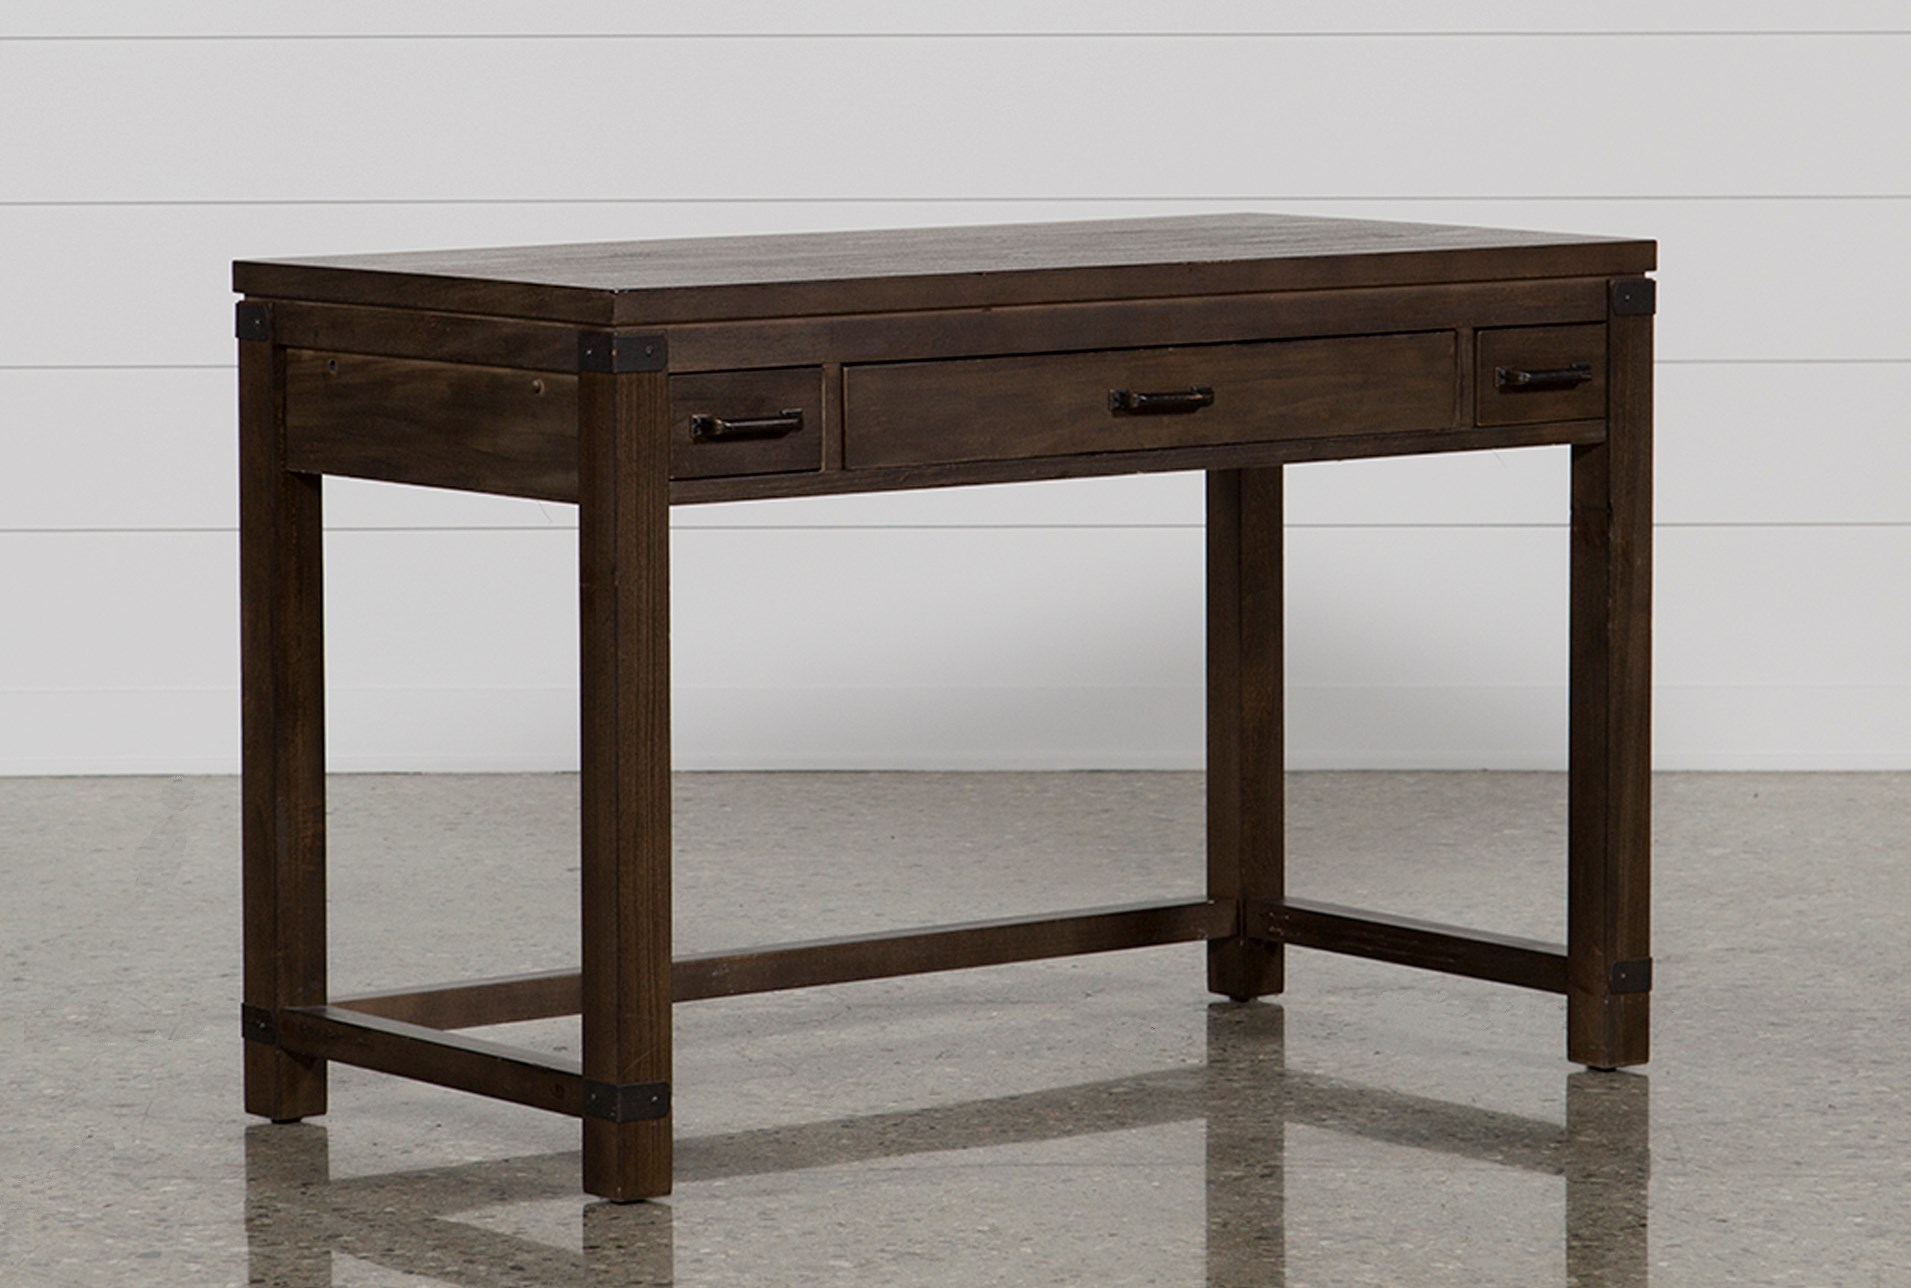 office desk table. Display Product Reviews For LIVINGSTON WRITING DESK Office Desk Table